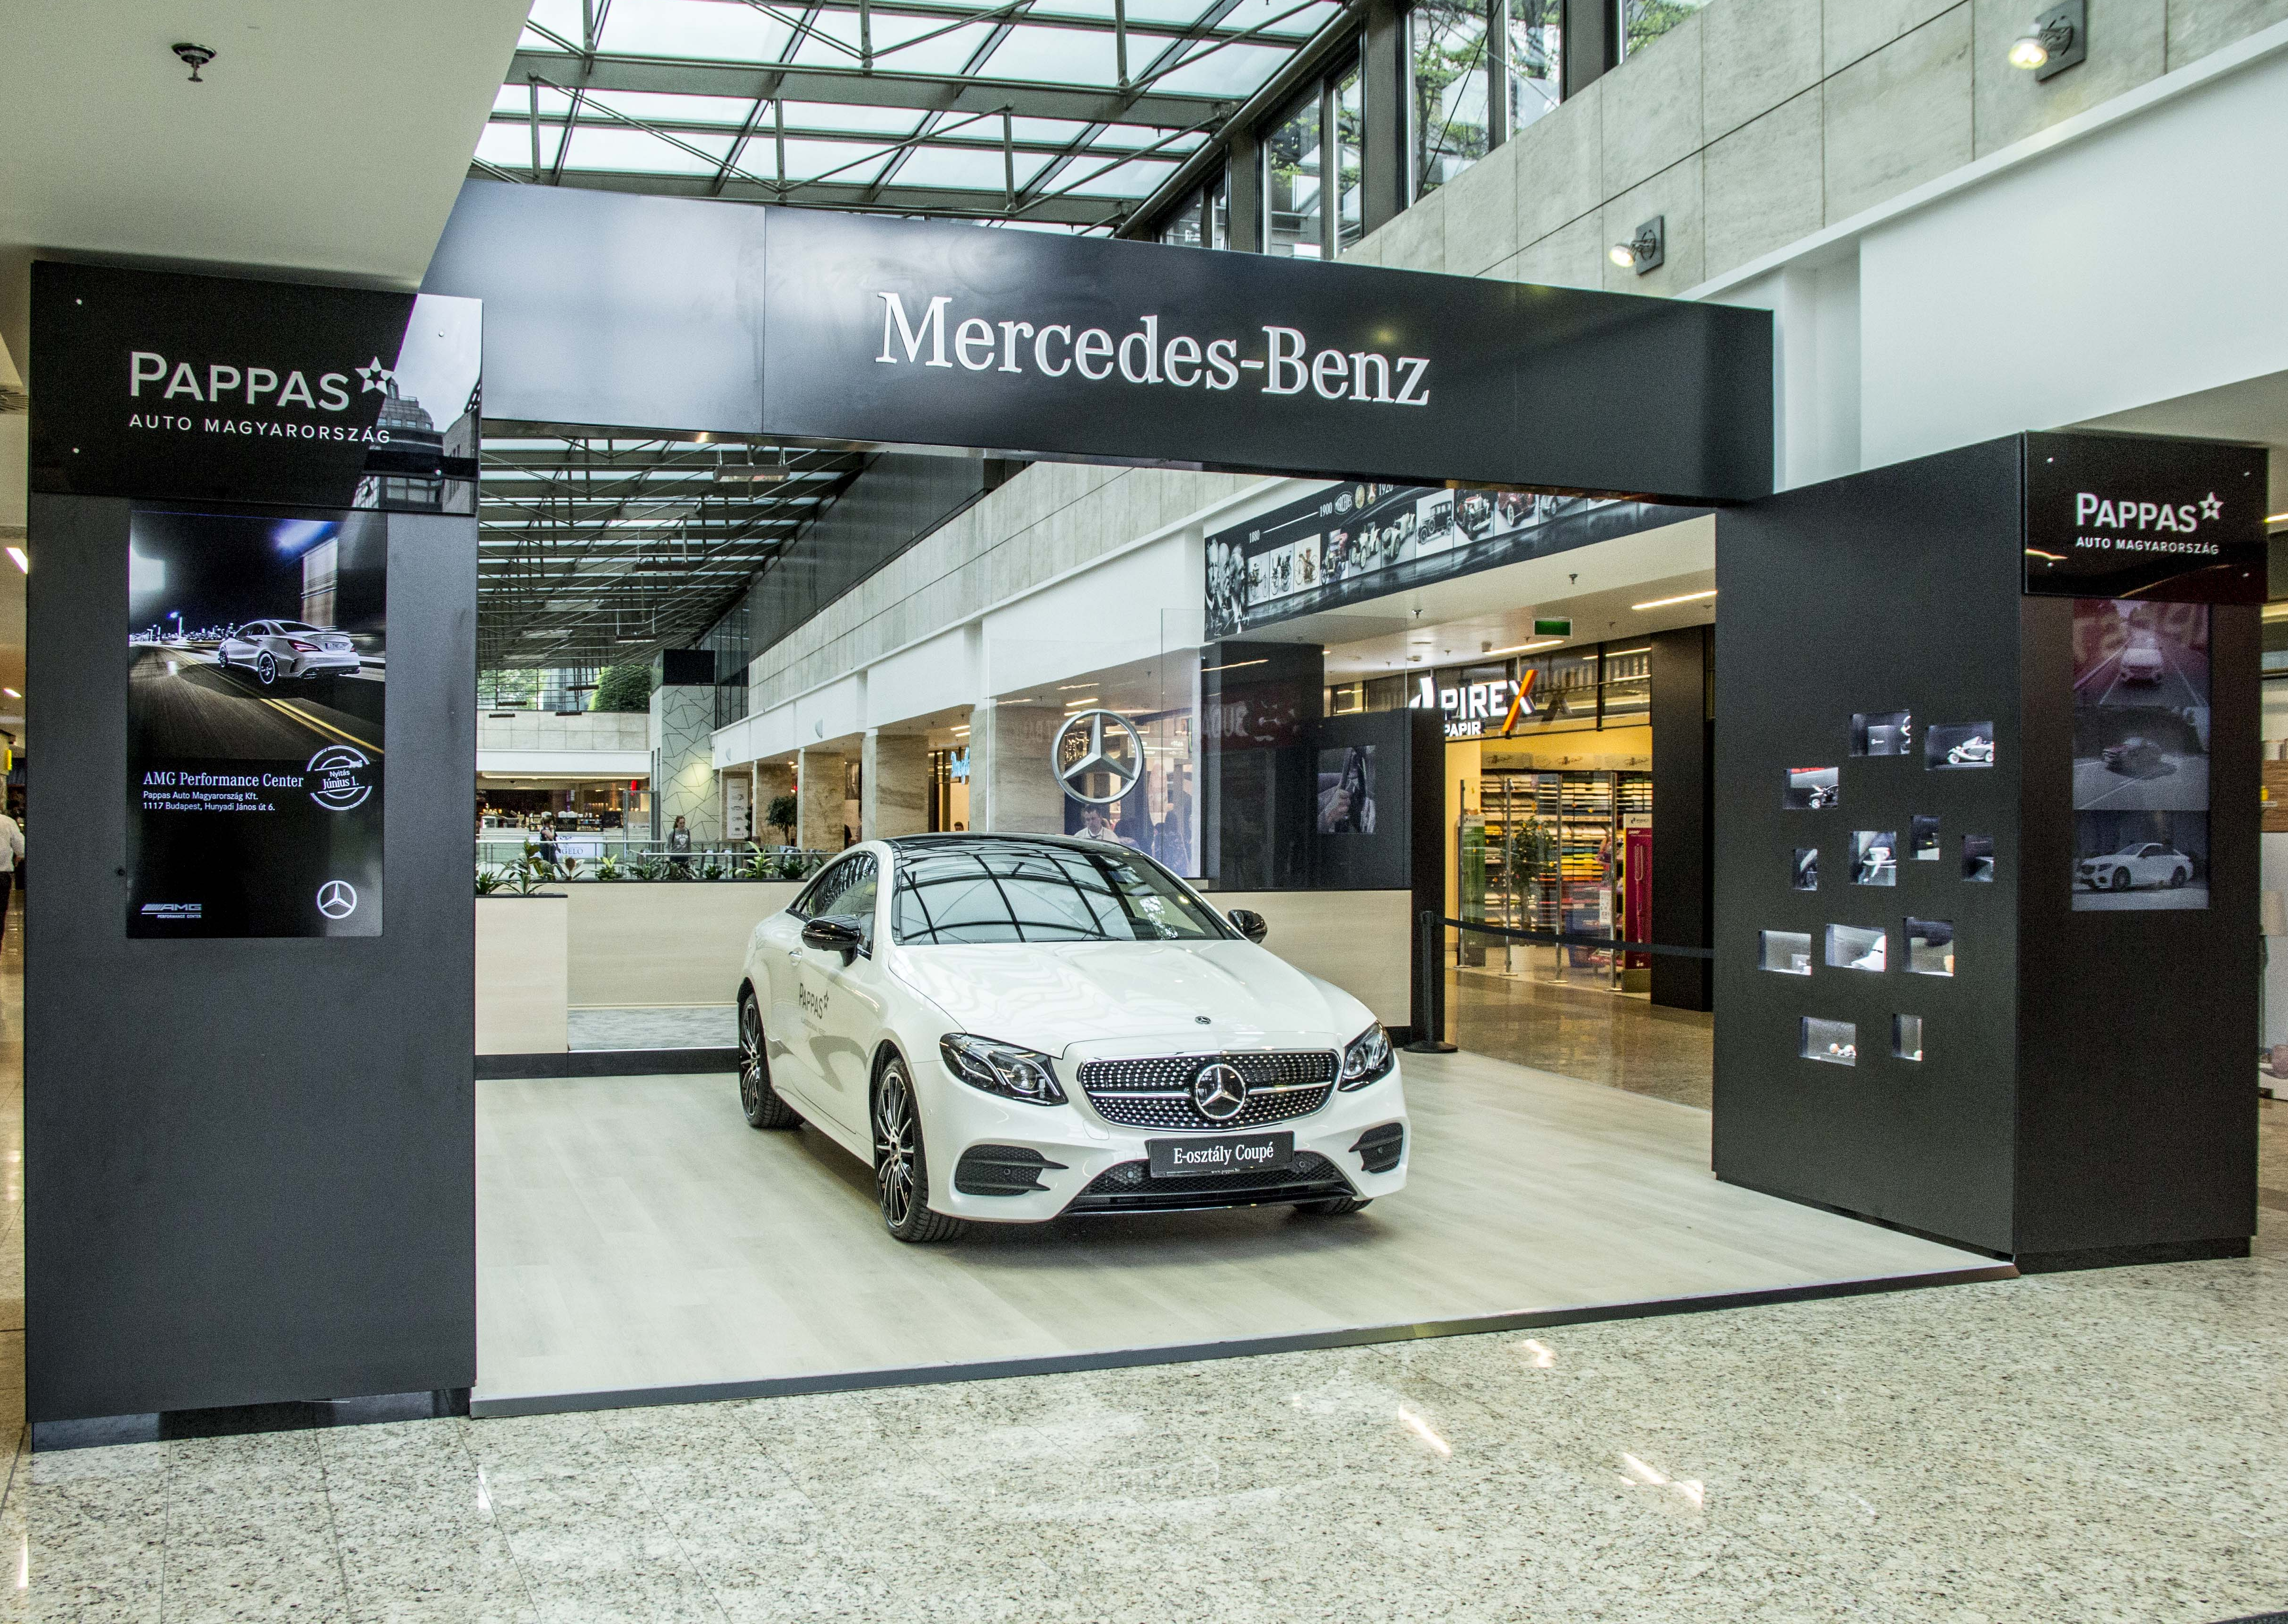 canada perfection benz store personalized accessories herovehicle parts mercedes